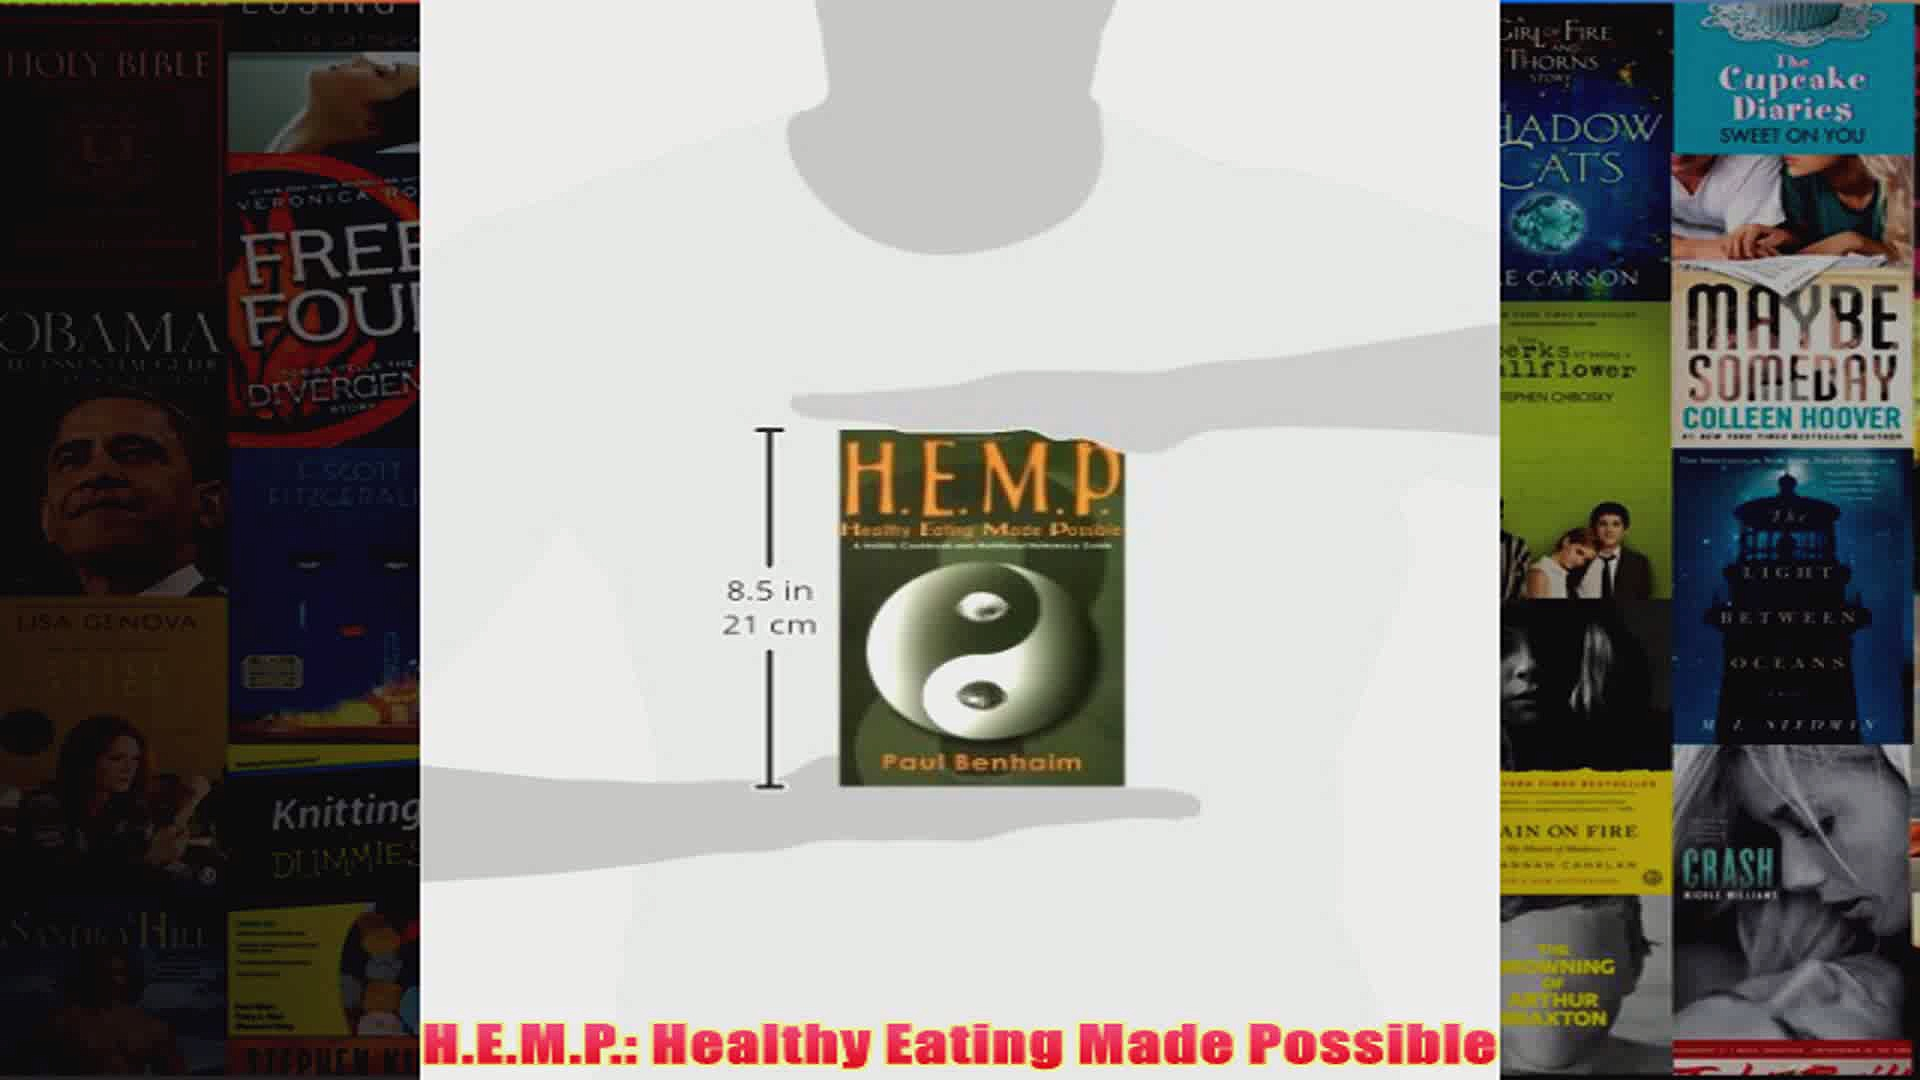 HEMP Healthy Eating Made Possible